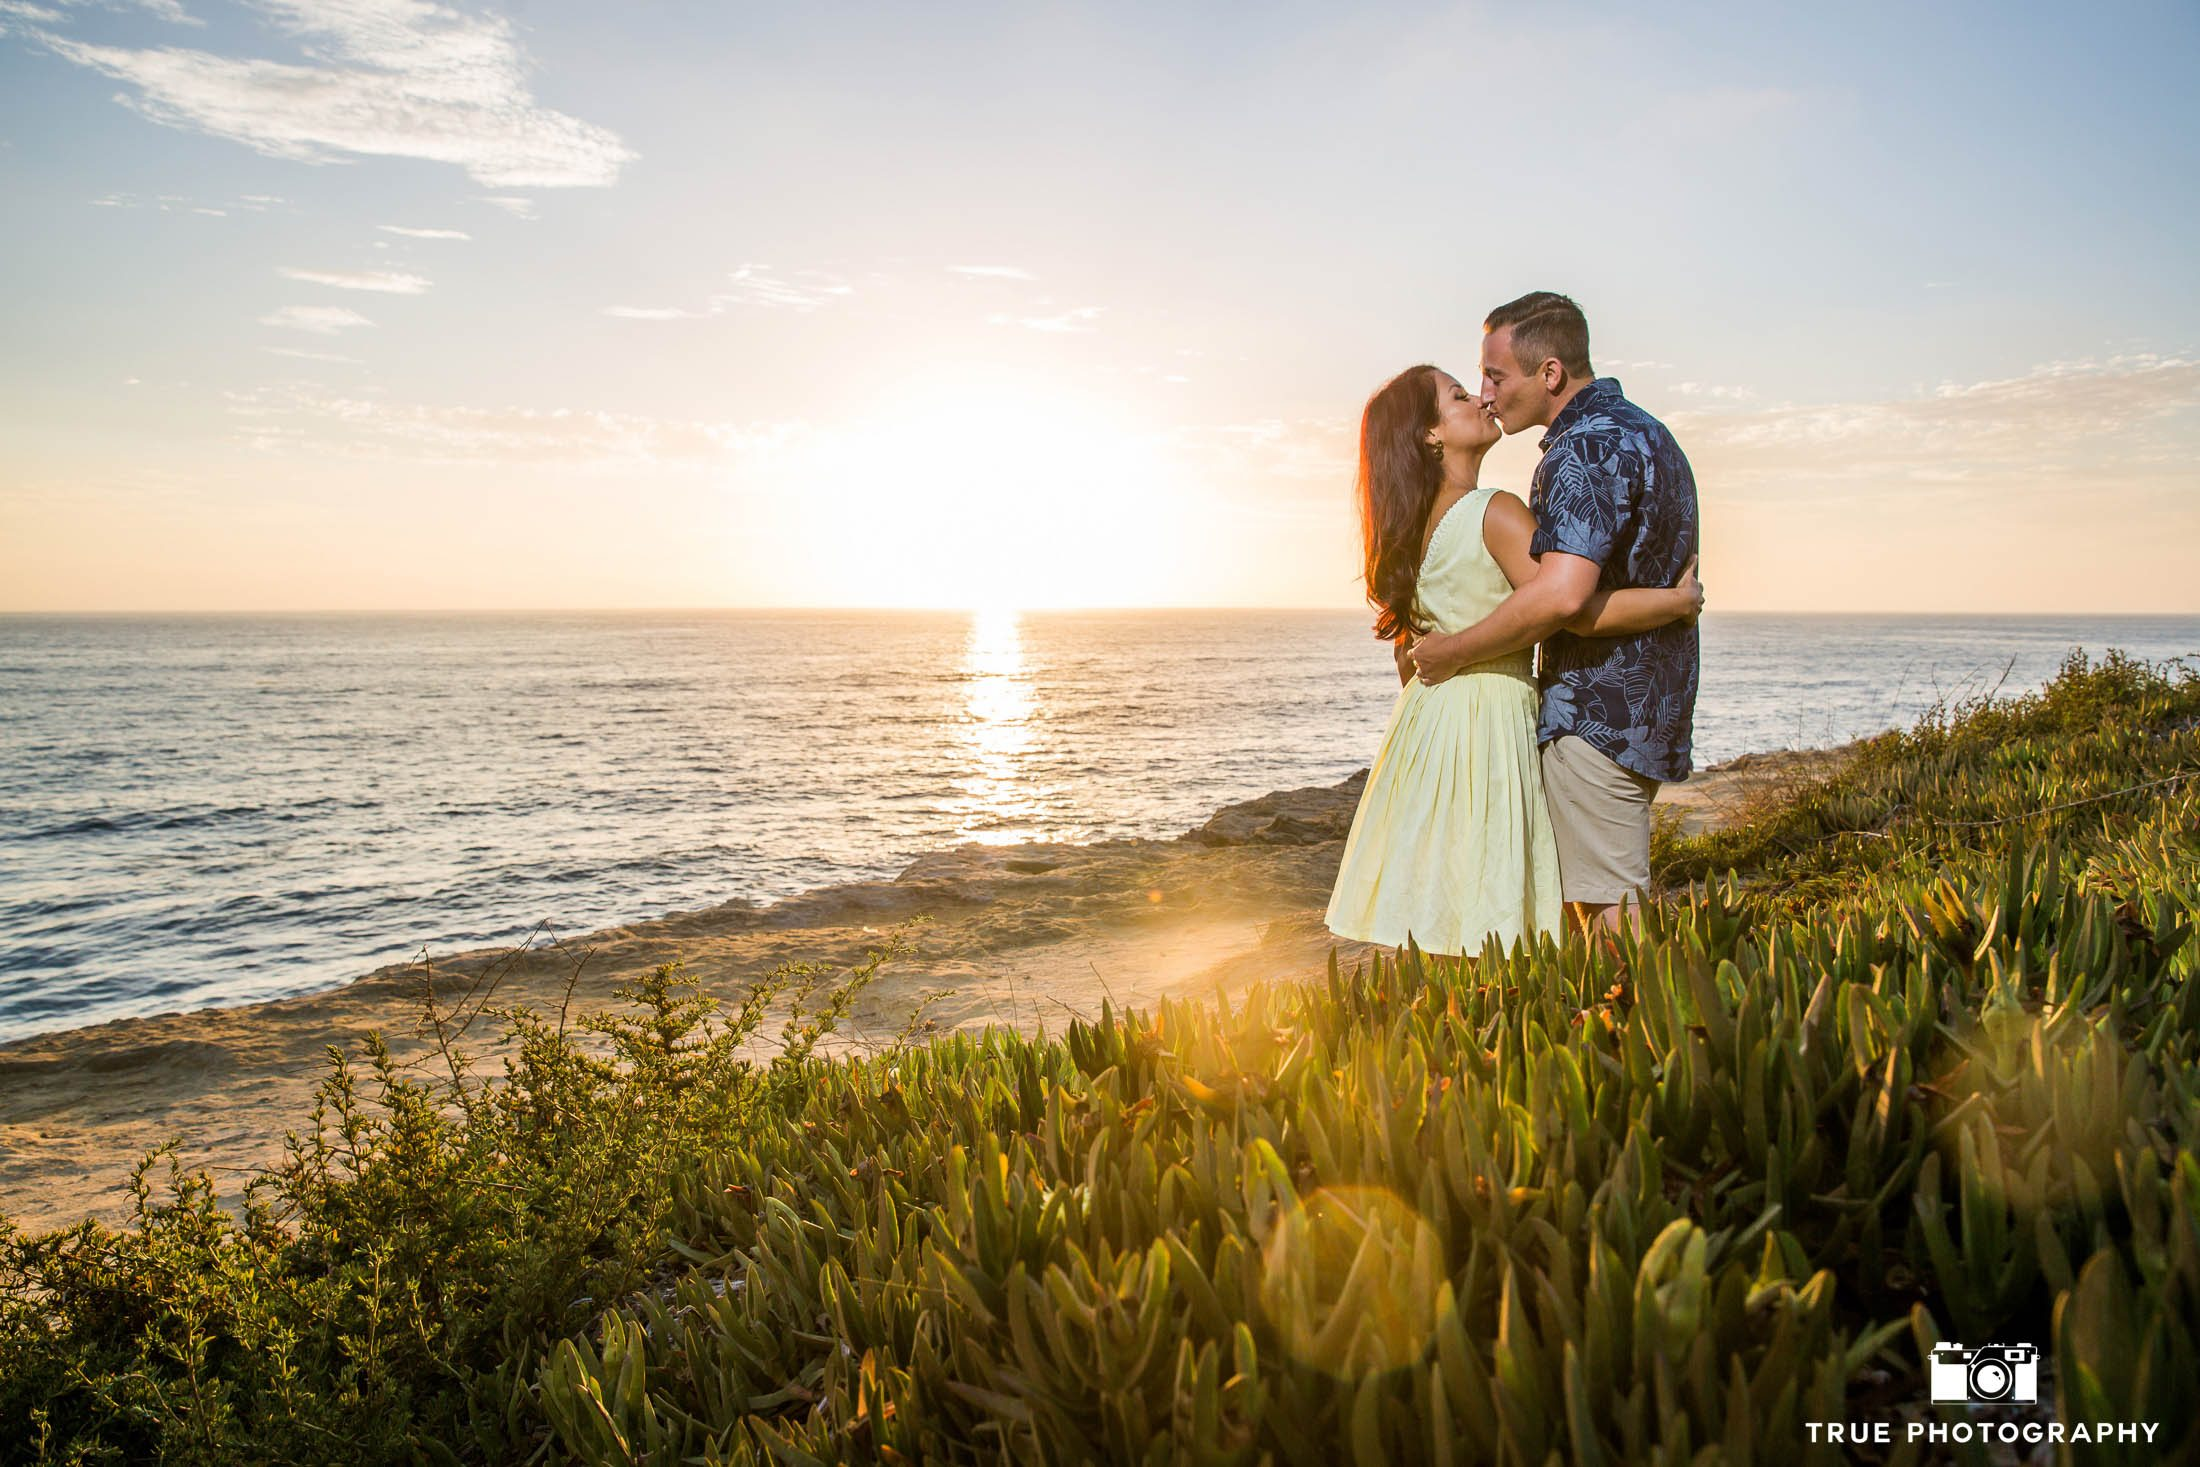 Engaged couple embrace and kiss one another during sunset at Sunset Cliffs